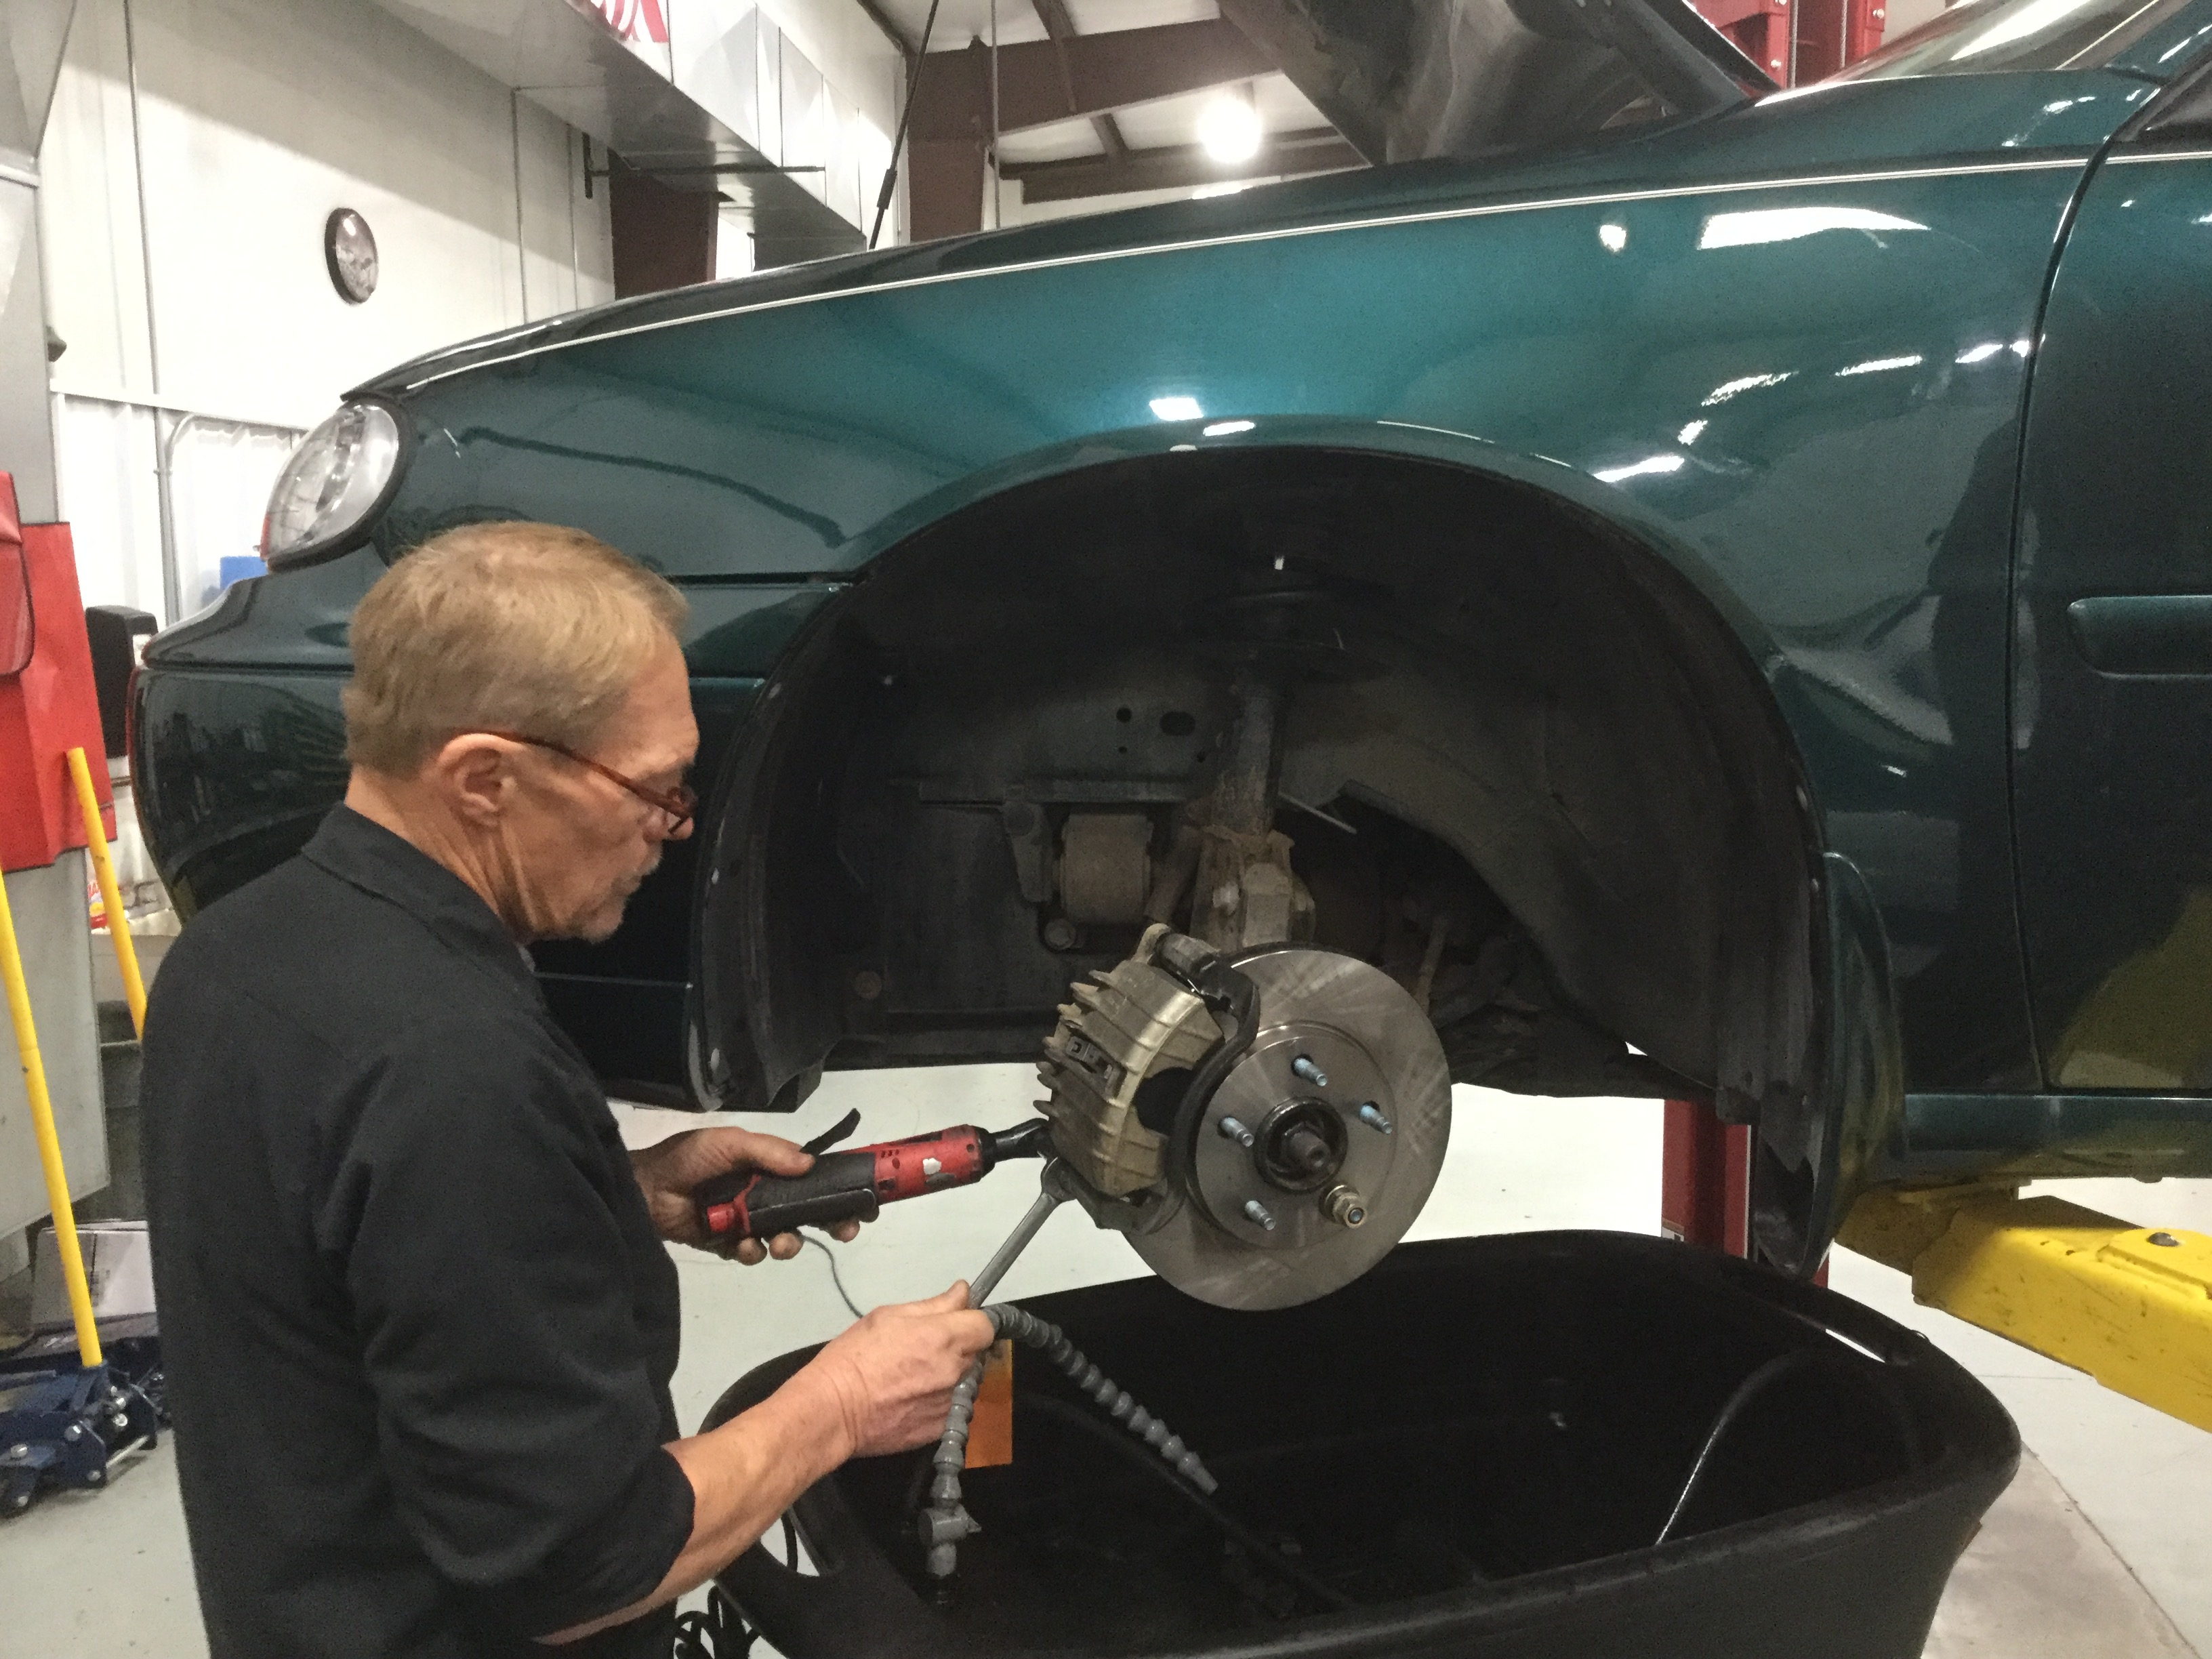 Pollution Emissions Test- Your motor vehicle produces multiple emissions which can contribute to air pollution. In a sprawling city such as Albuquerque this contributes to smog. In a sprawling city such as Albuquerque this contributes to smog.